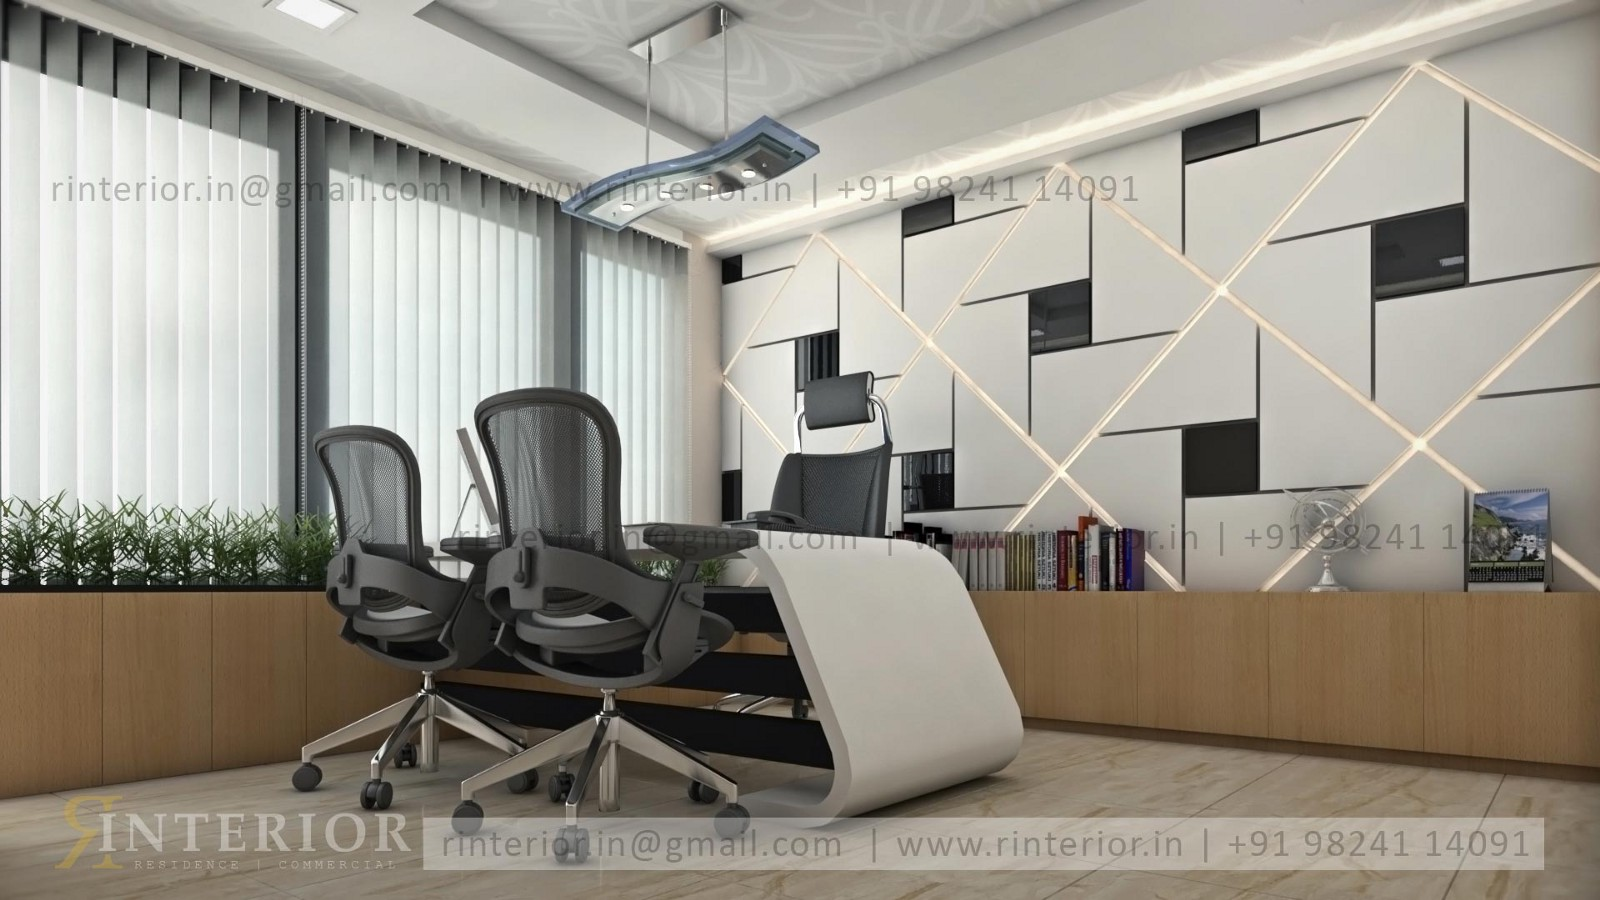 Great Solution For Commercial Interior Design In India Rinterior